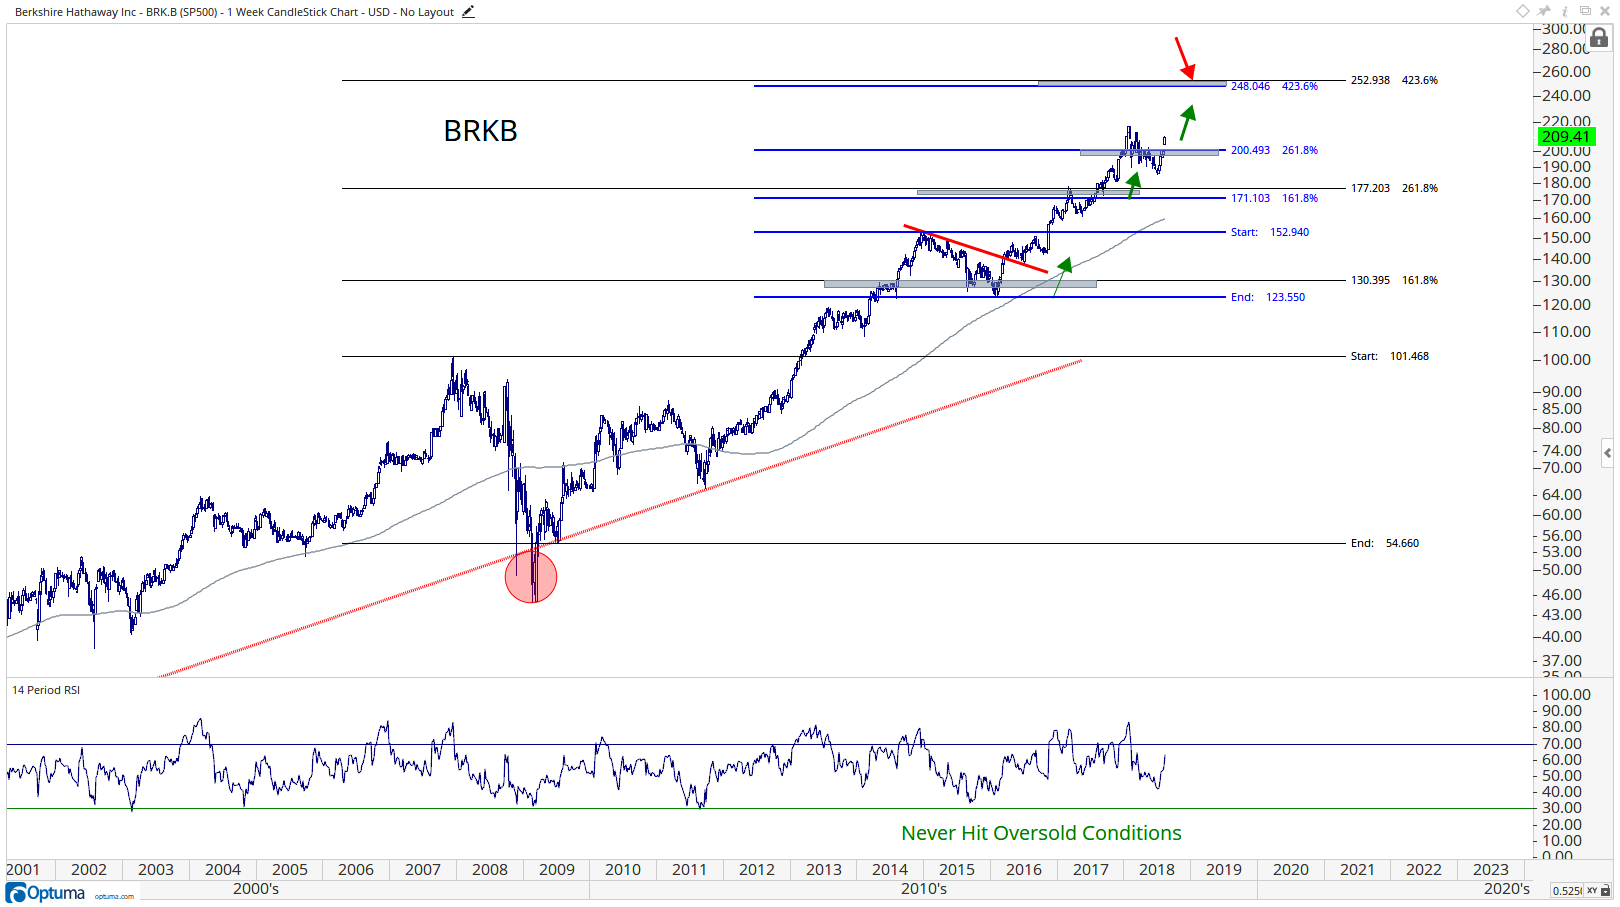 Longer-term technical chart showing the unptrend in Berkshire Hathaway Inc. (BRK.B) stock